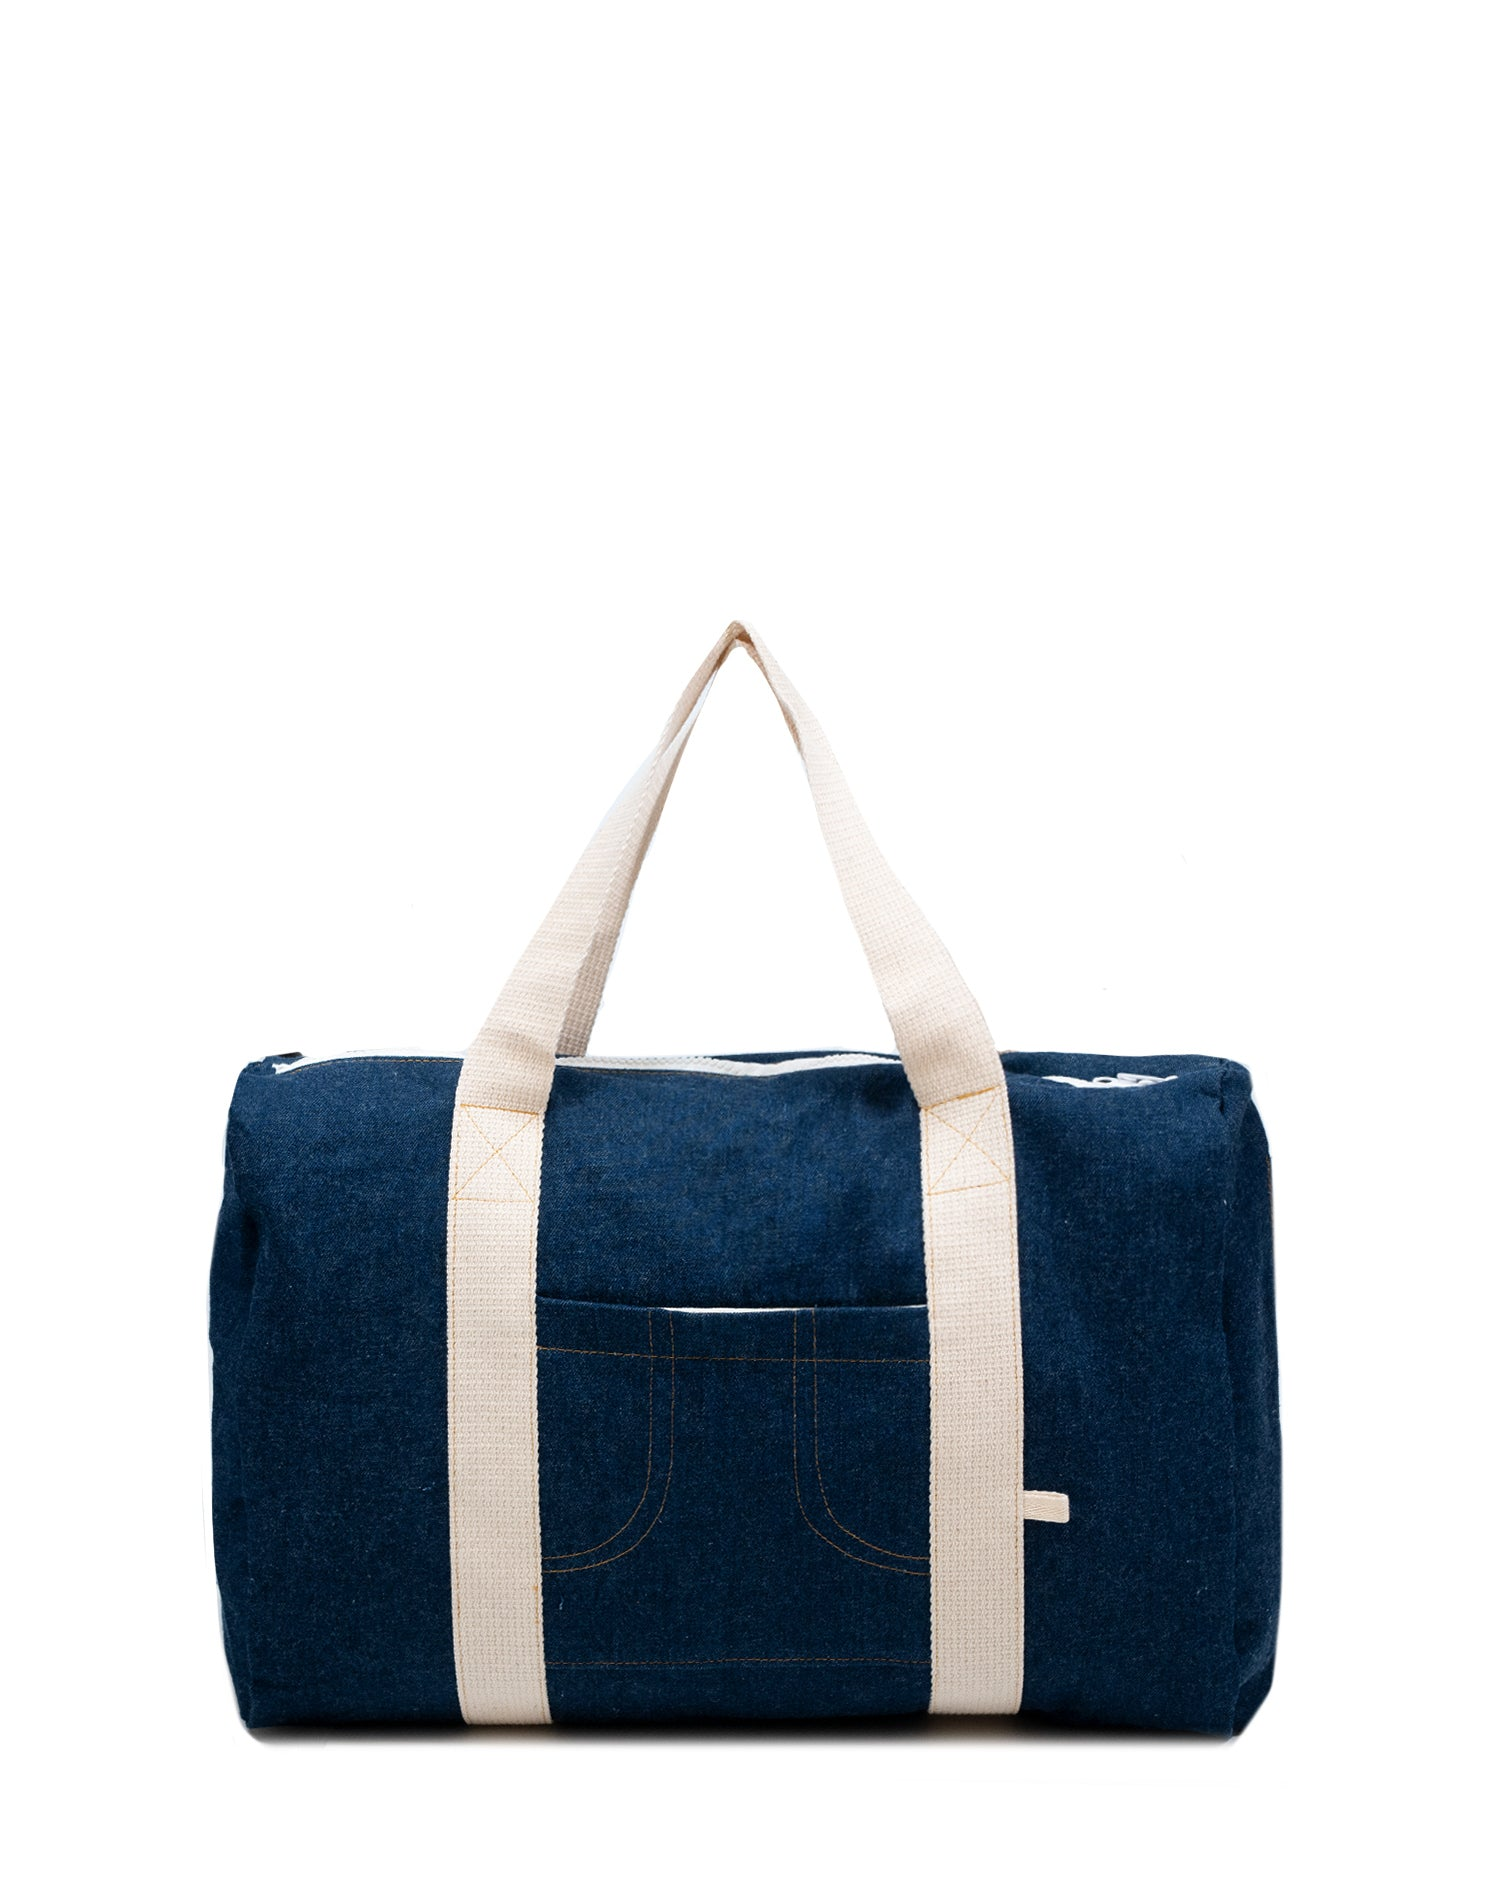 Denim Chic Canvas Street Duffel Bag.牛仔帆布行李袋